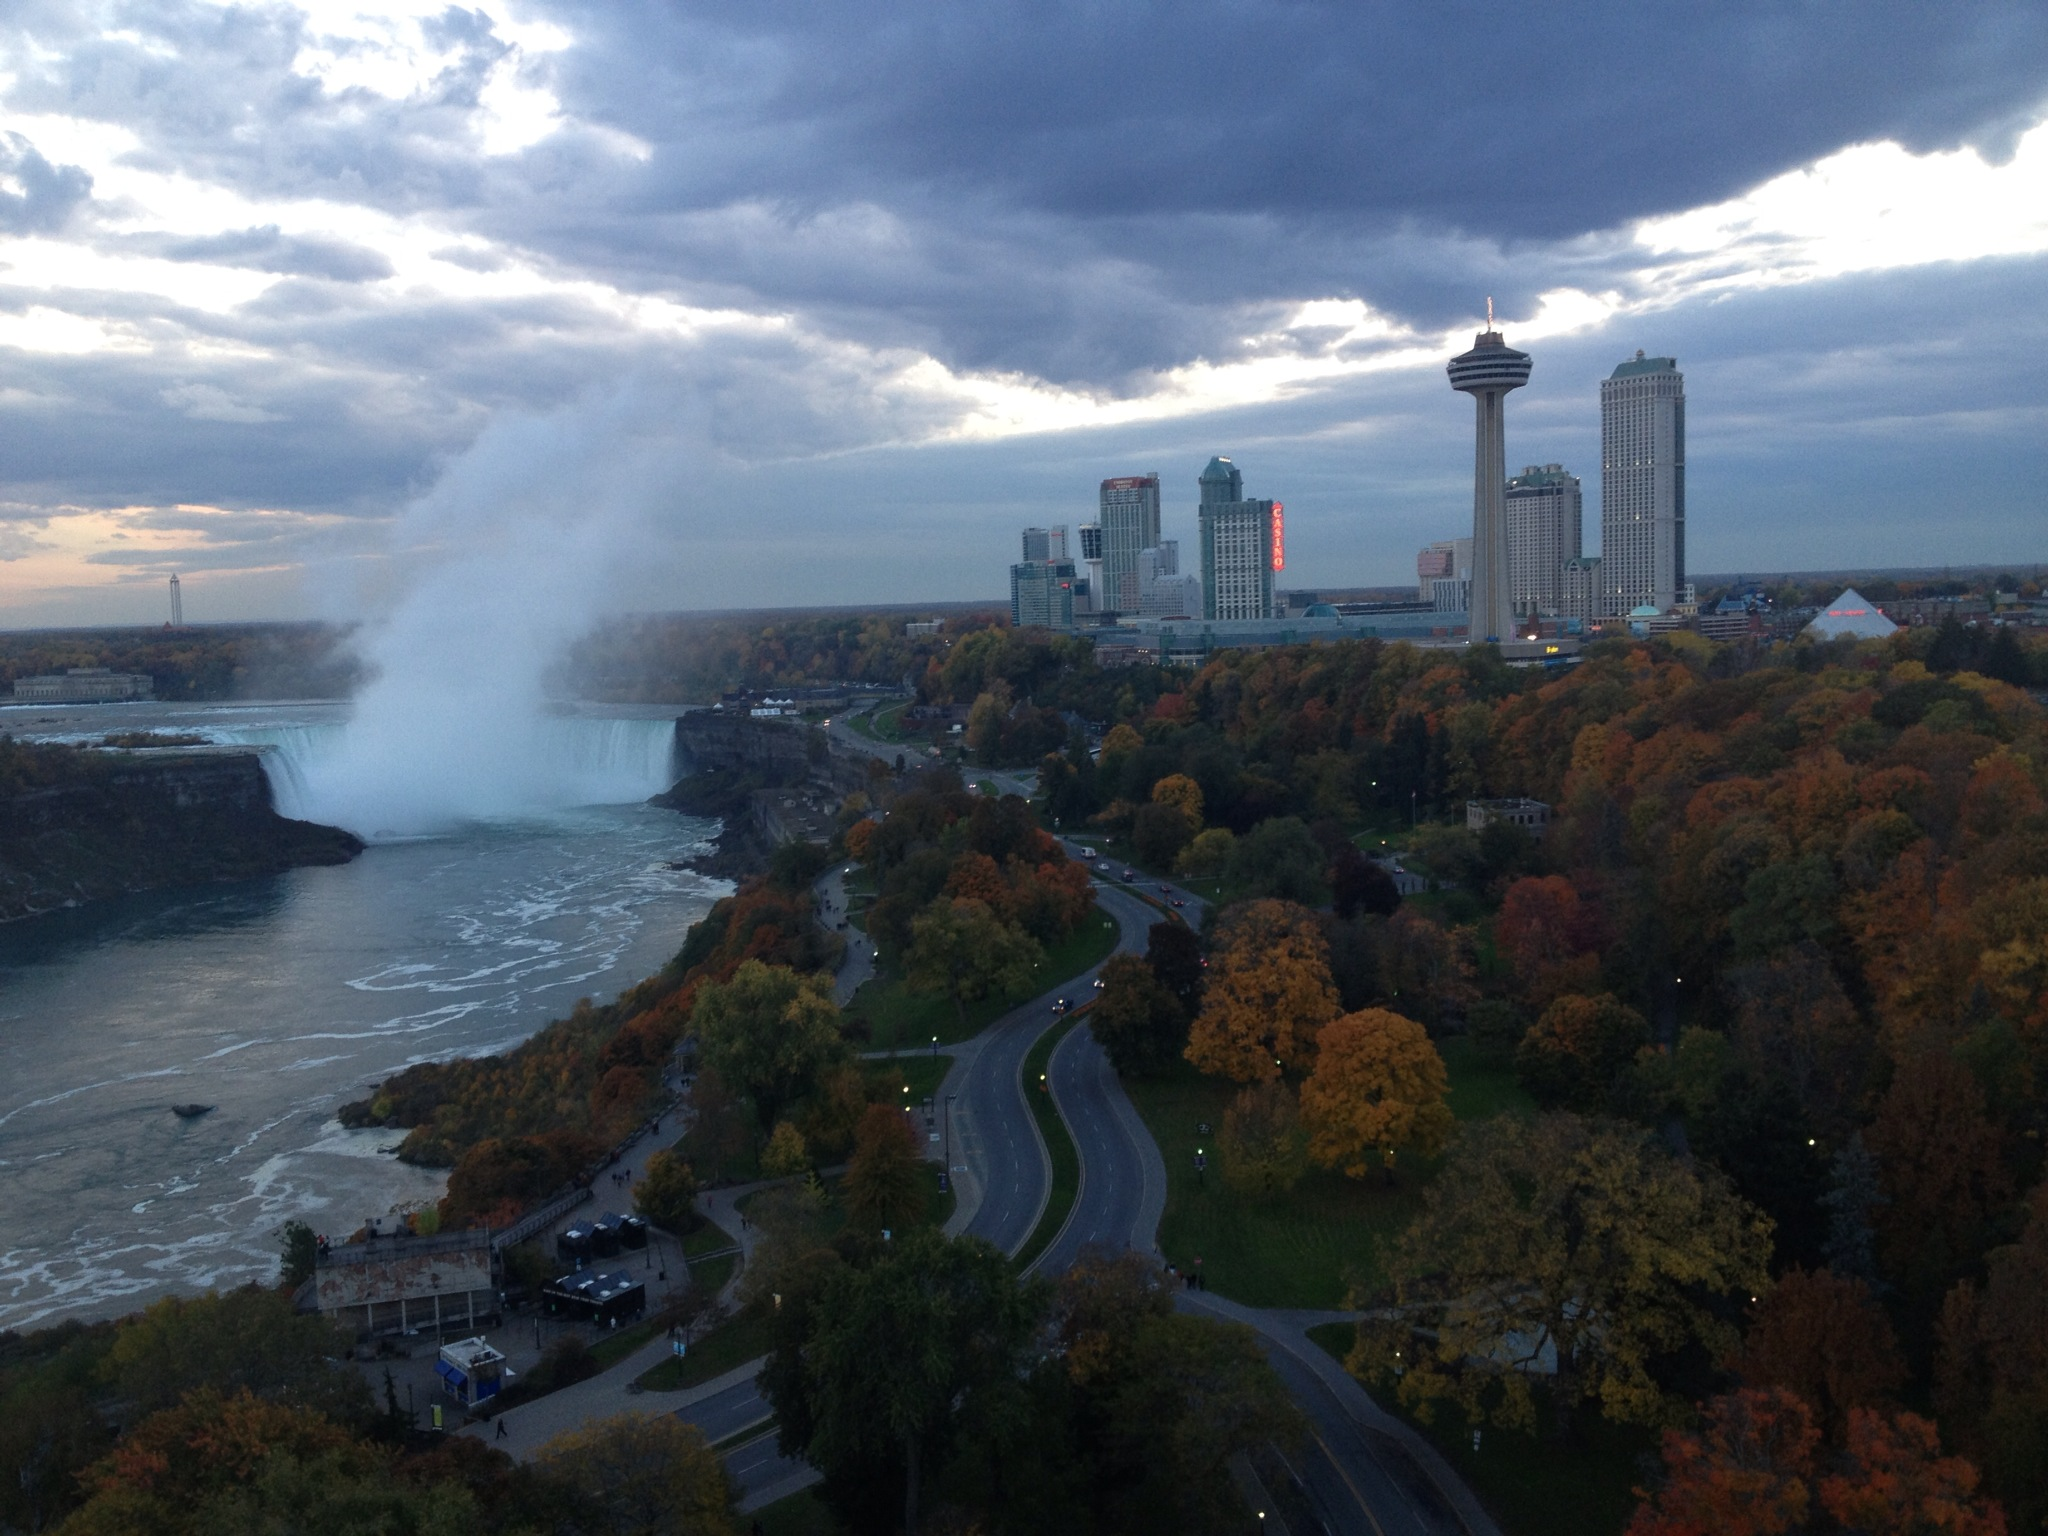 Niagara Falls on the Canadian side by marktravel